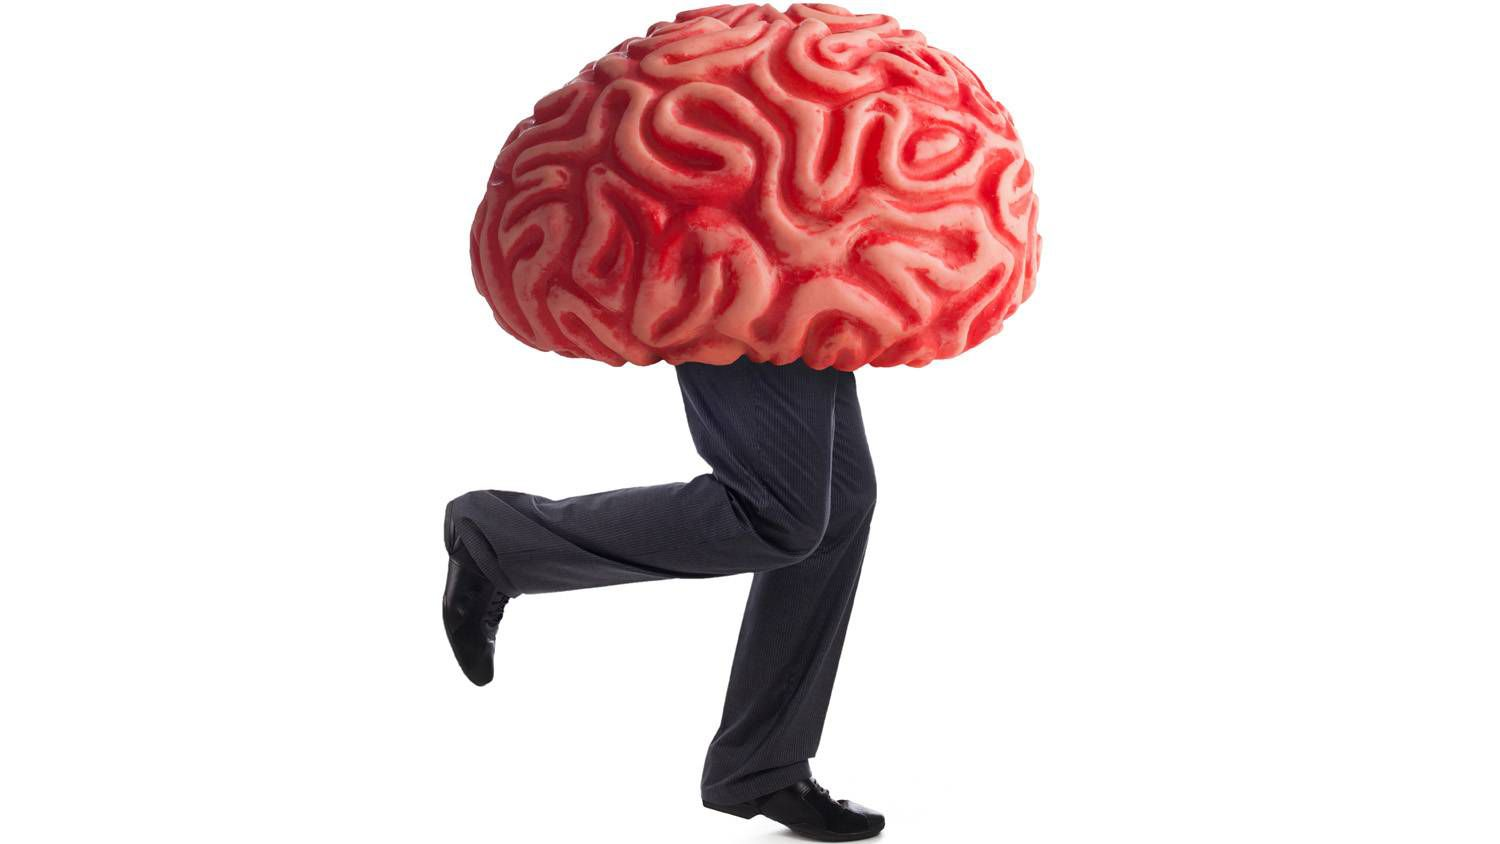 brain drain meaning in english